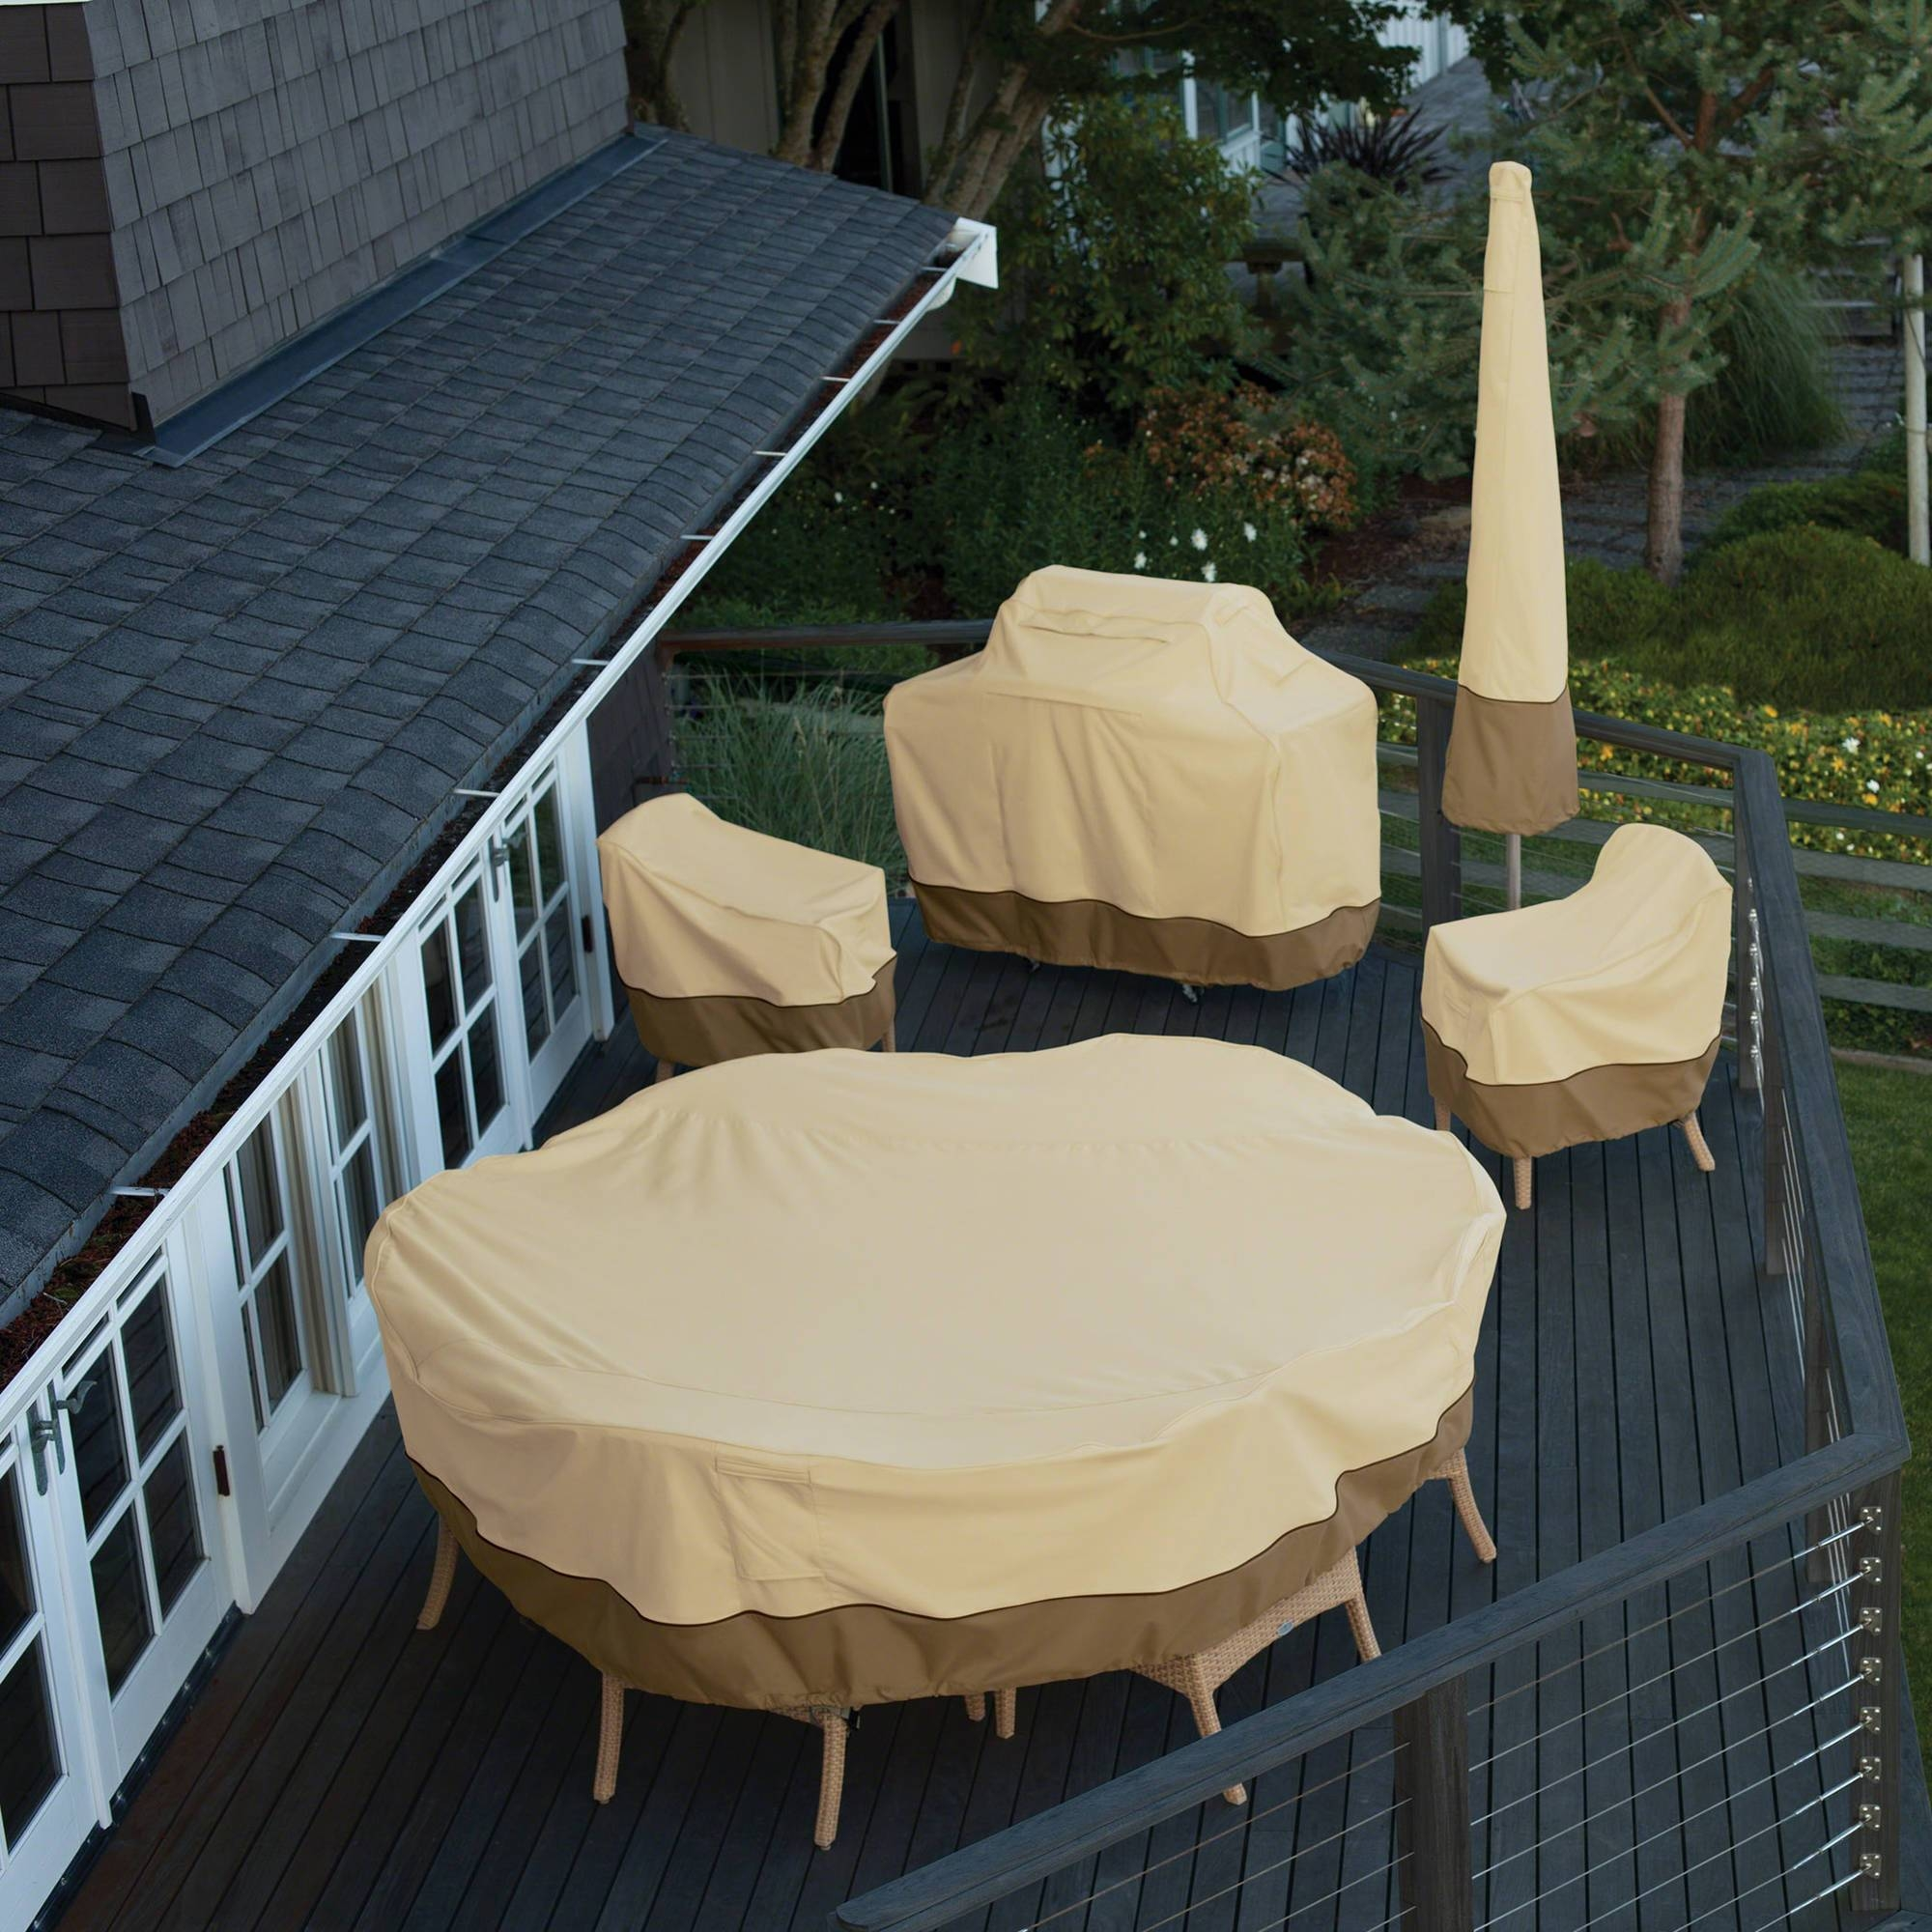 Classic Accessories Veranda Round Patio Table & Chair Set Cover in Garden Sofa Covers (Image 4 of 26)